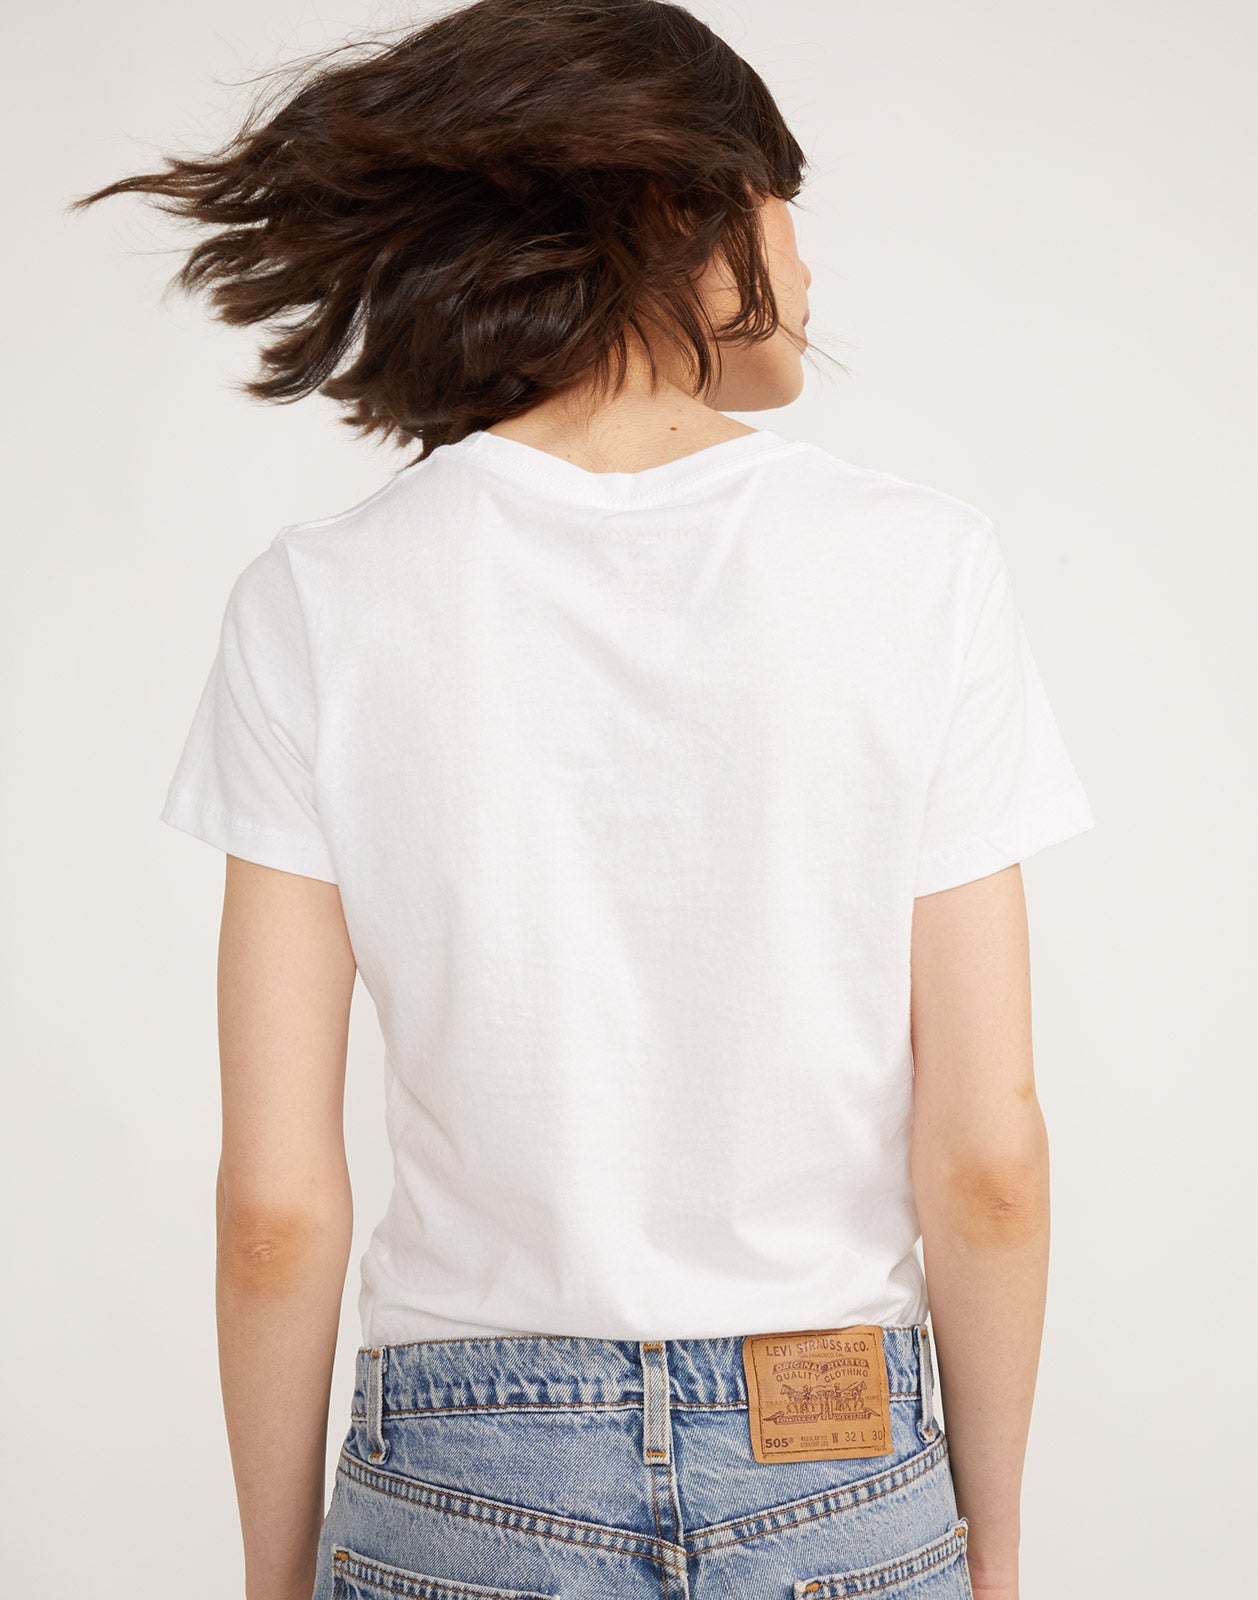 Back view of model wearing I Love You tee.